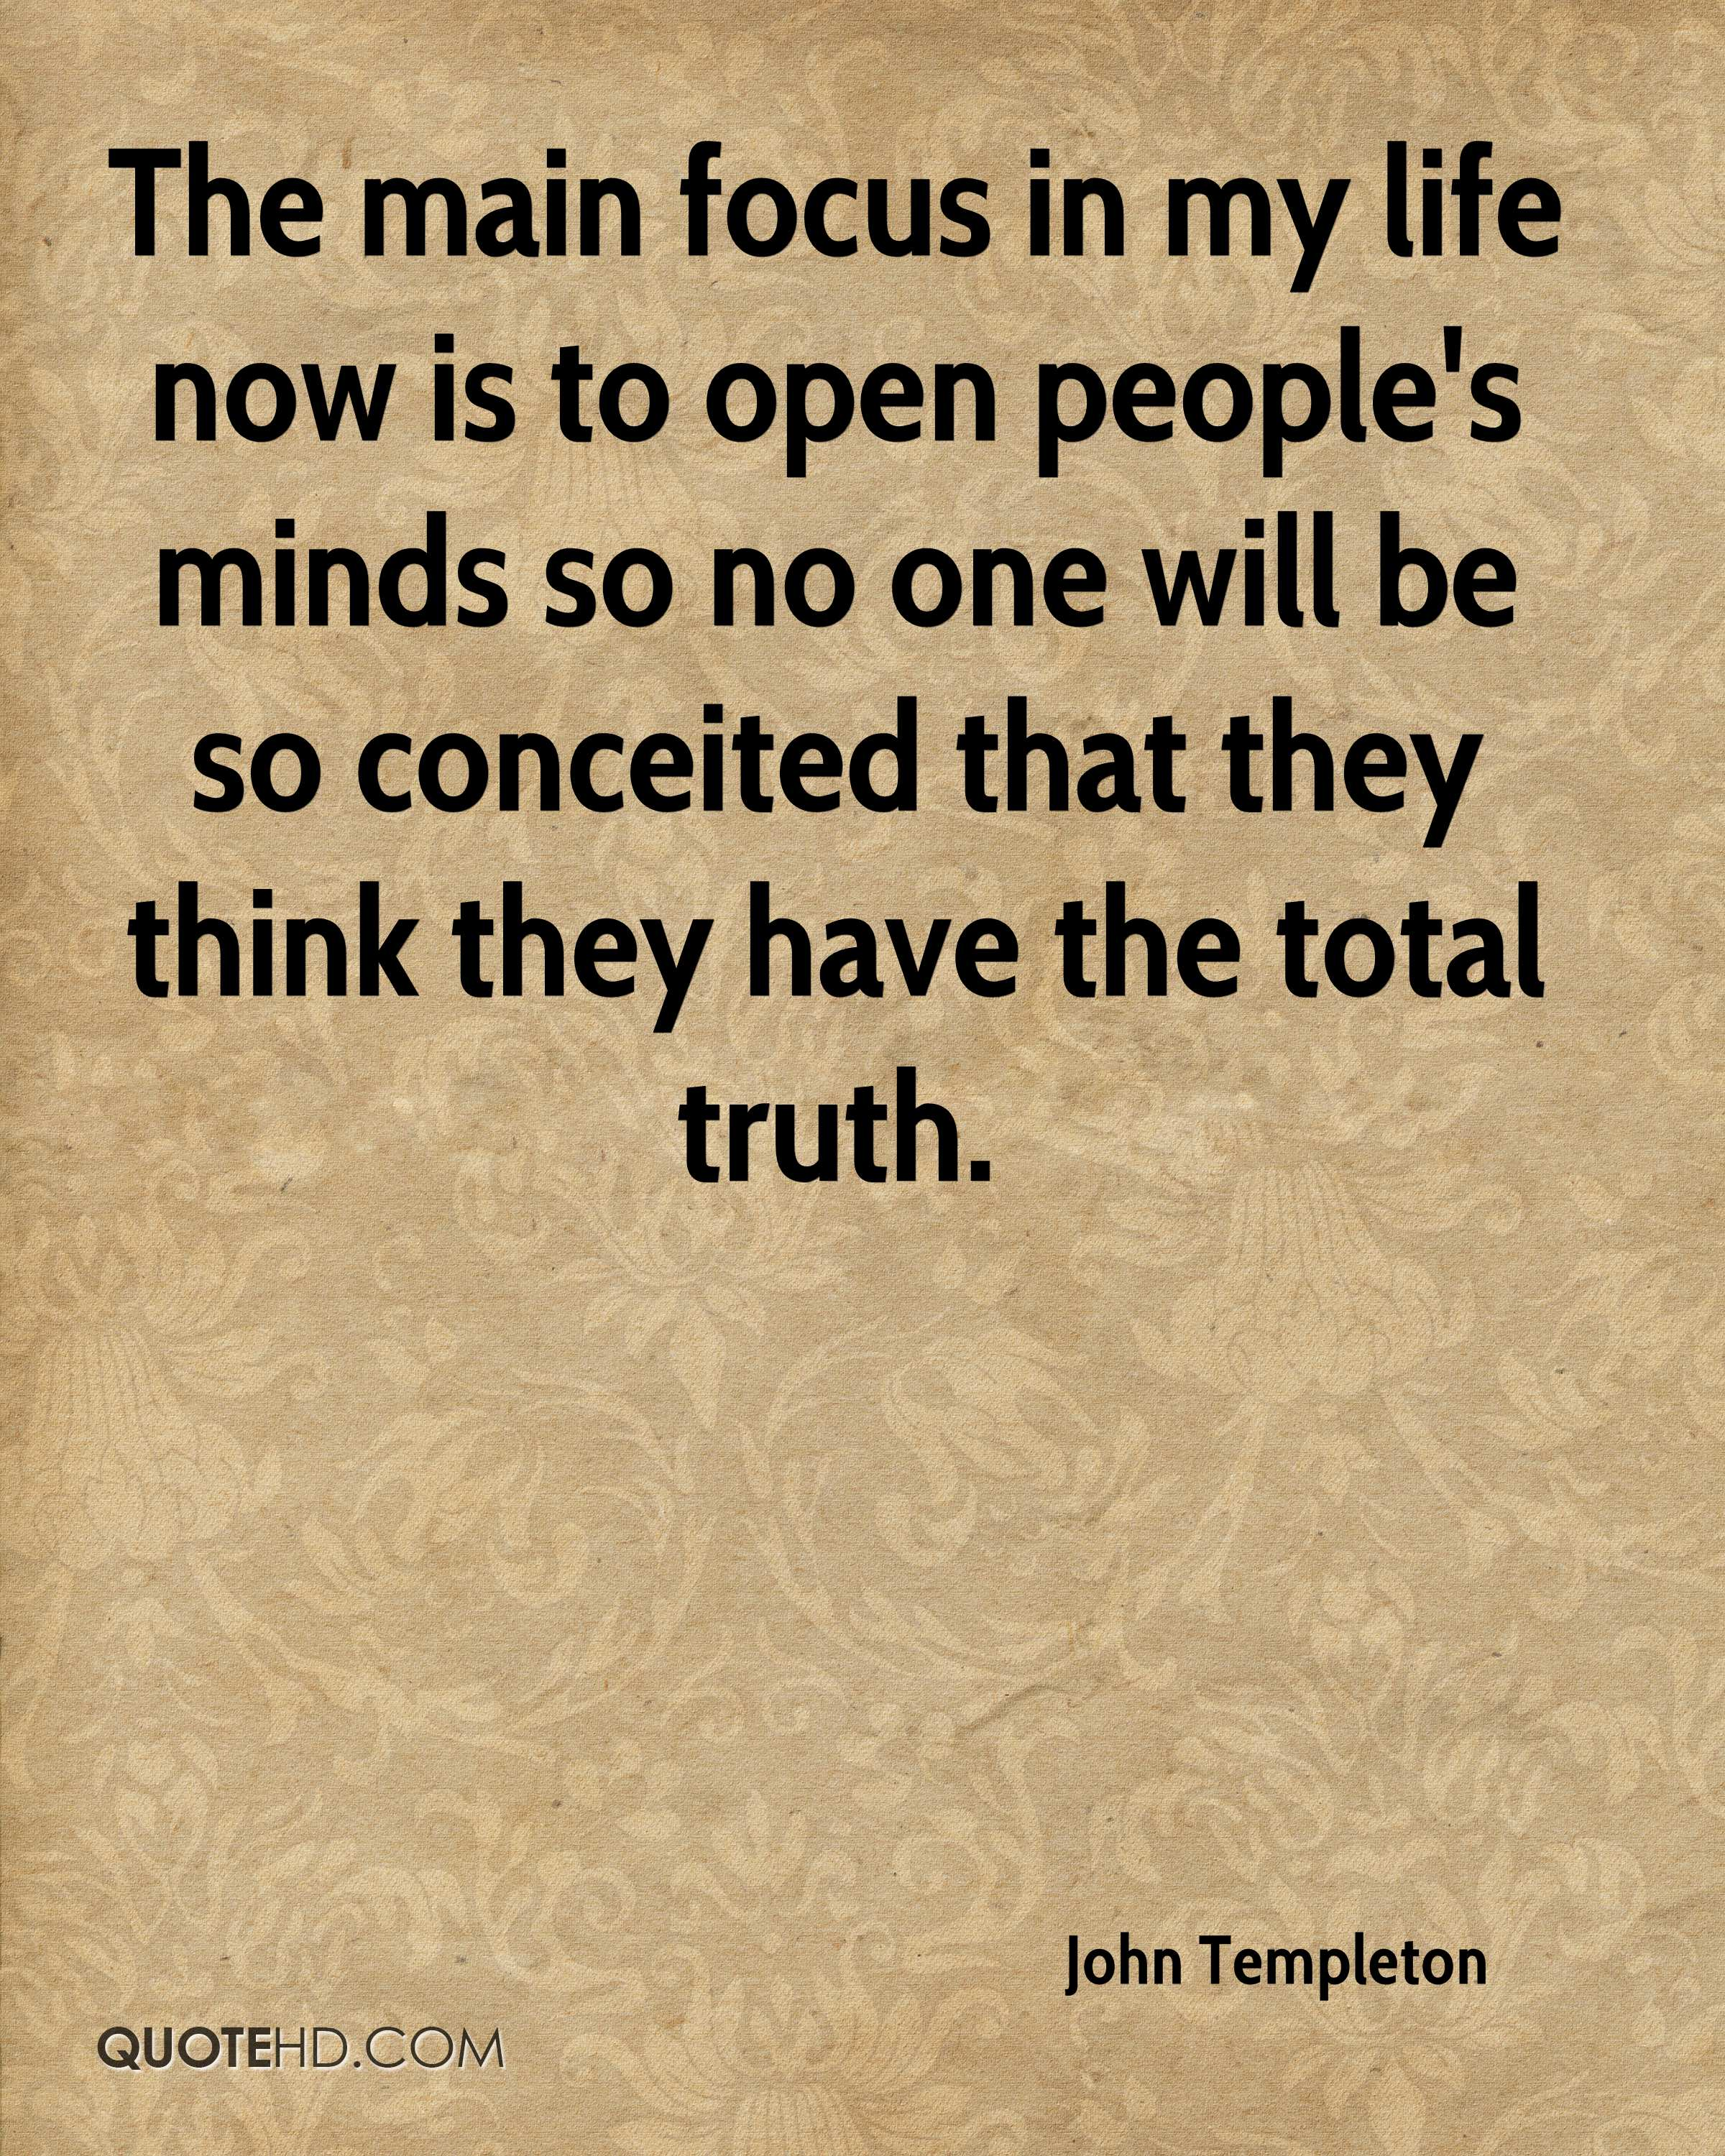 The main focus in my life now is to open people's minds so no one will be so conceited that they think they have the total truth.